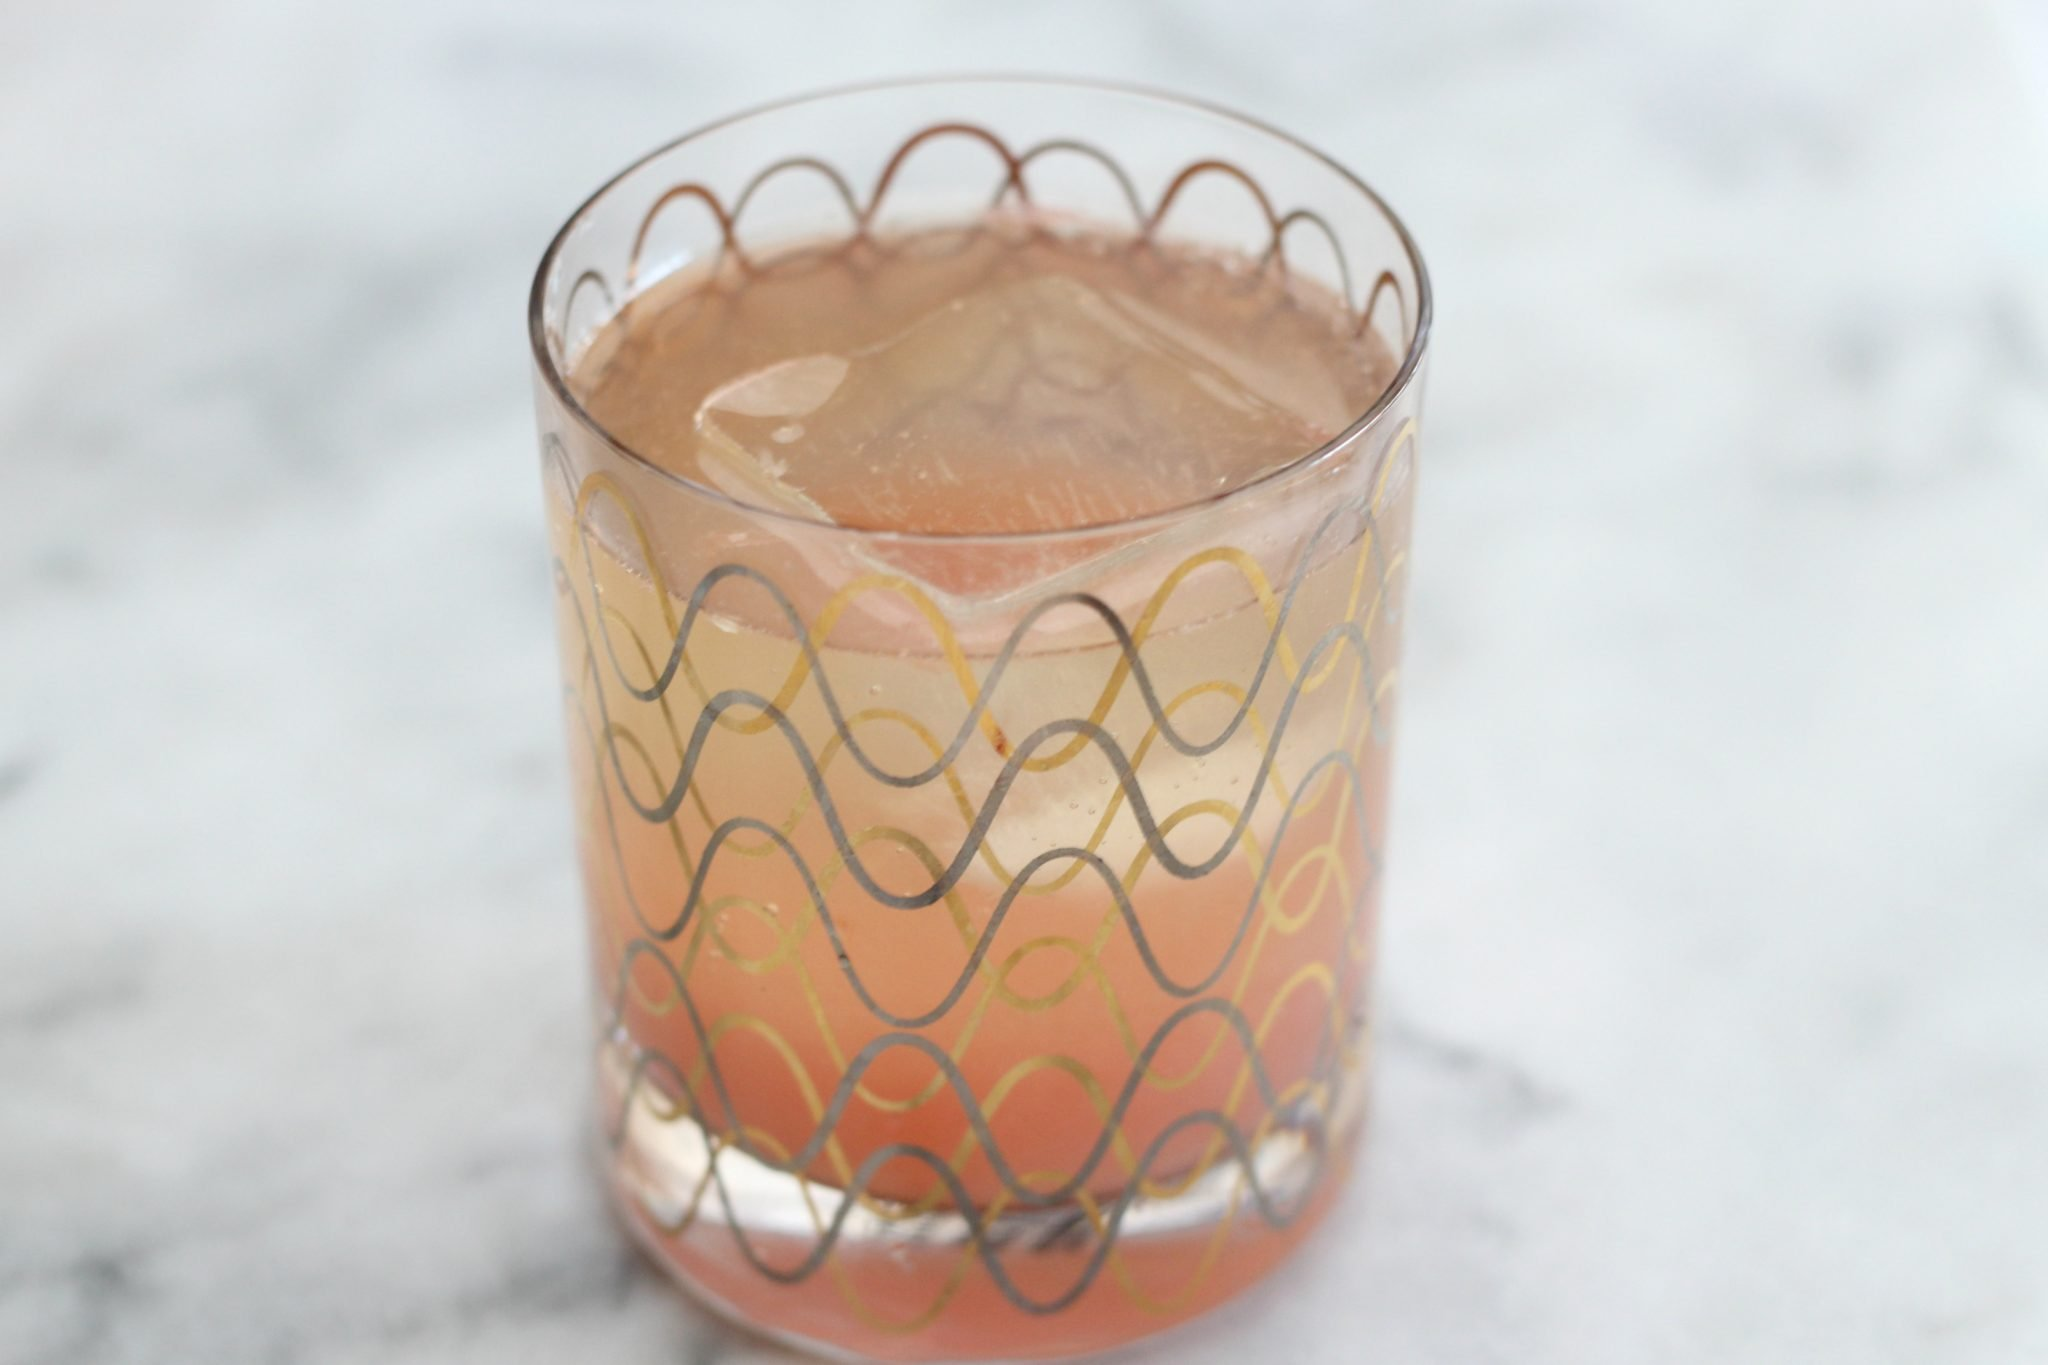 Grapefruit, tequila and soda cocktail